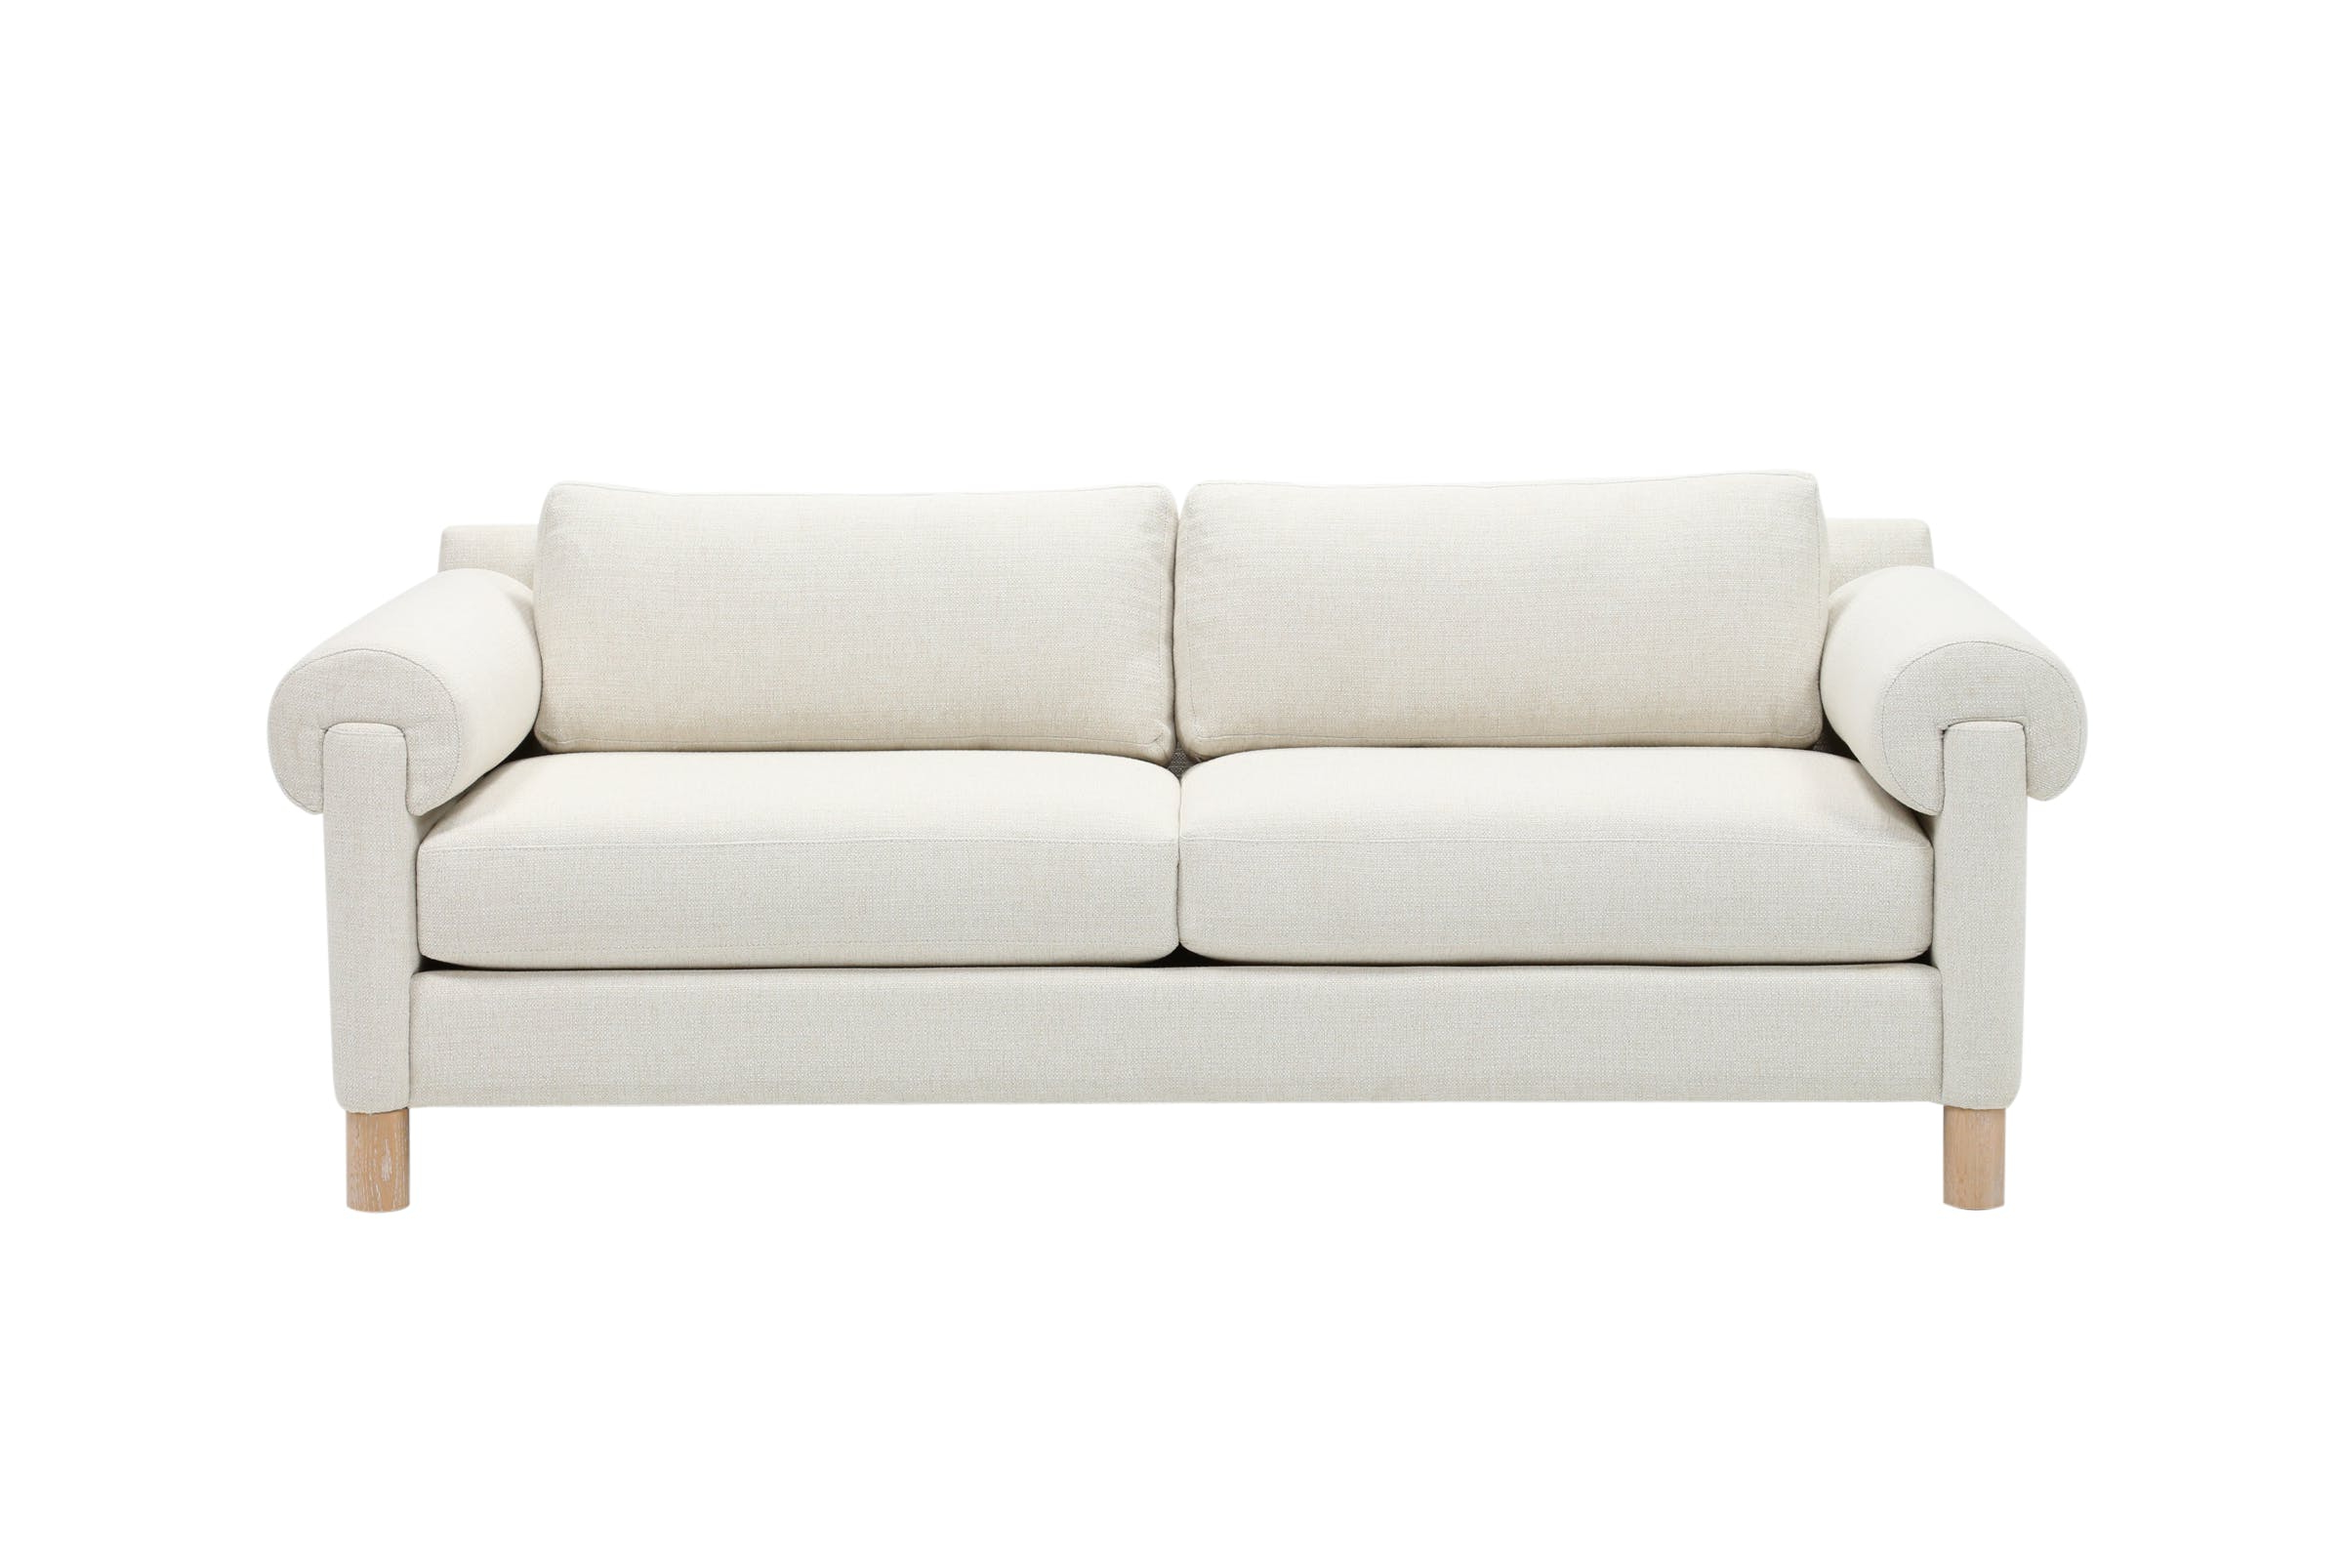 Matteo Arm Sofa Chairs By Nate Berkus And Jeremiah Brent Regarding Preferred Nate Berkus Just Launched A Home Collection With Hubby Jeremiah (Gallery 5 of 20)